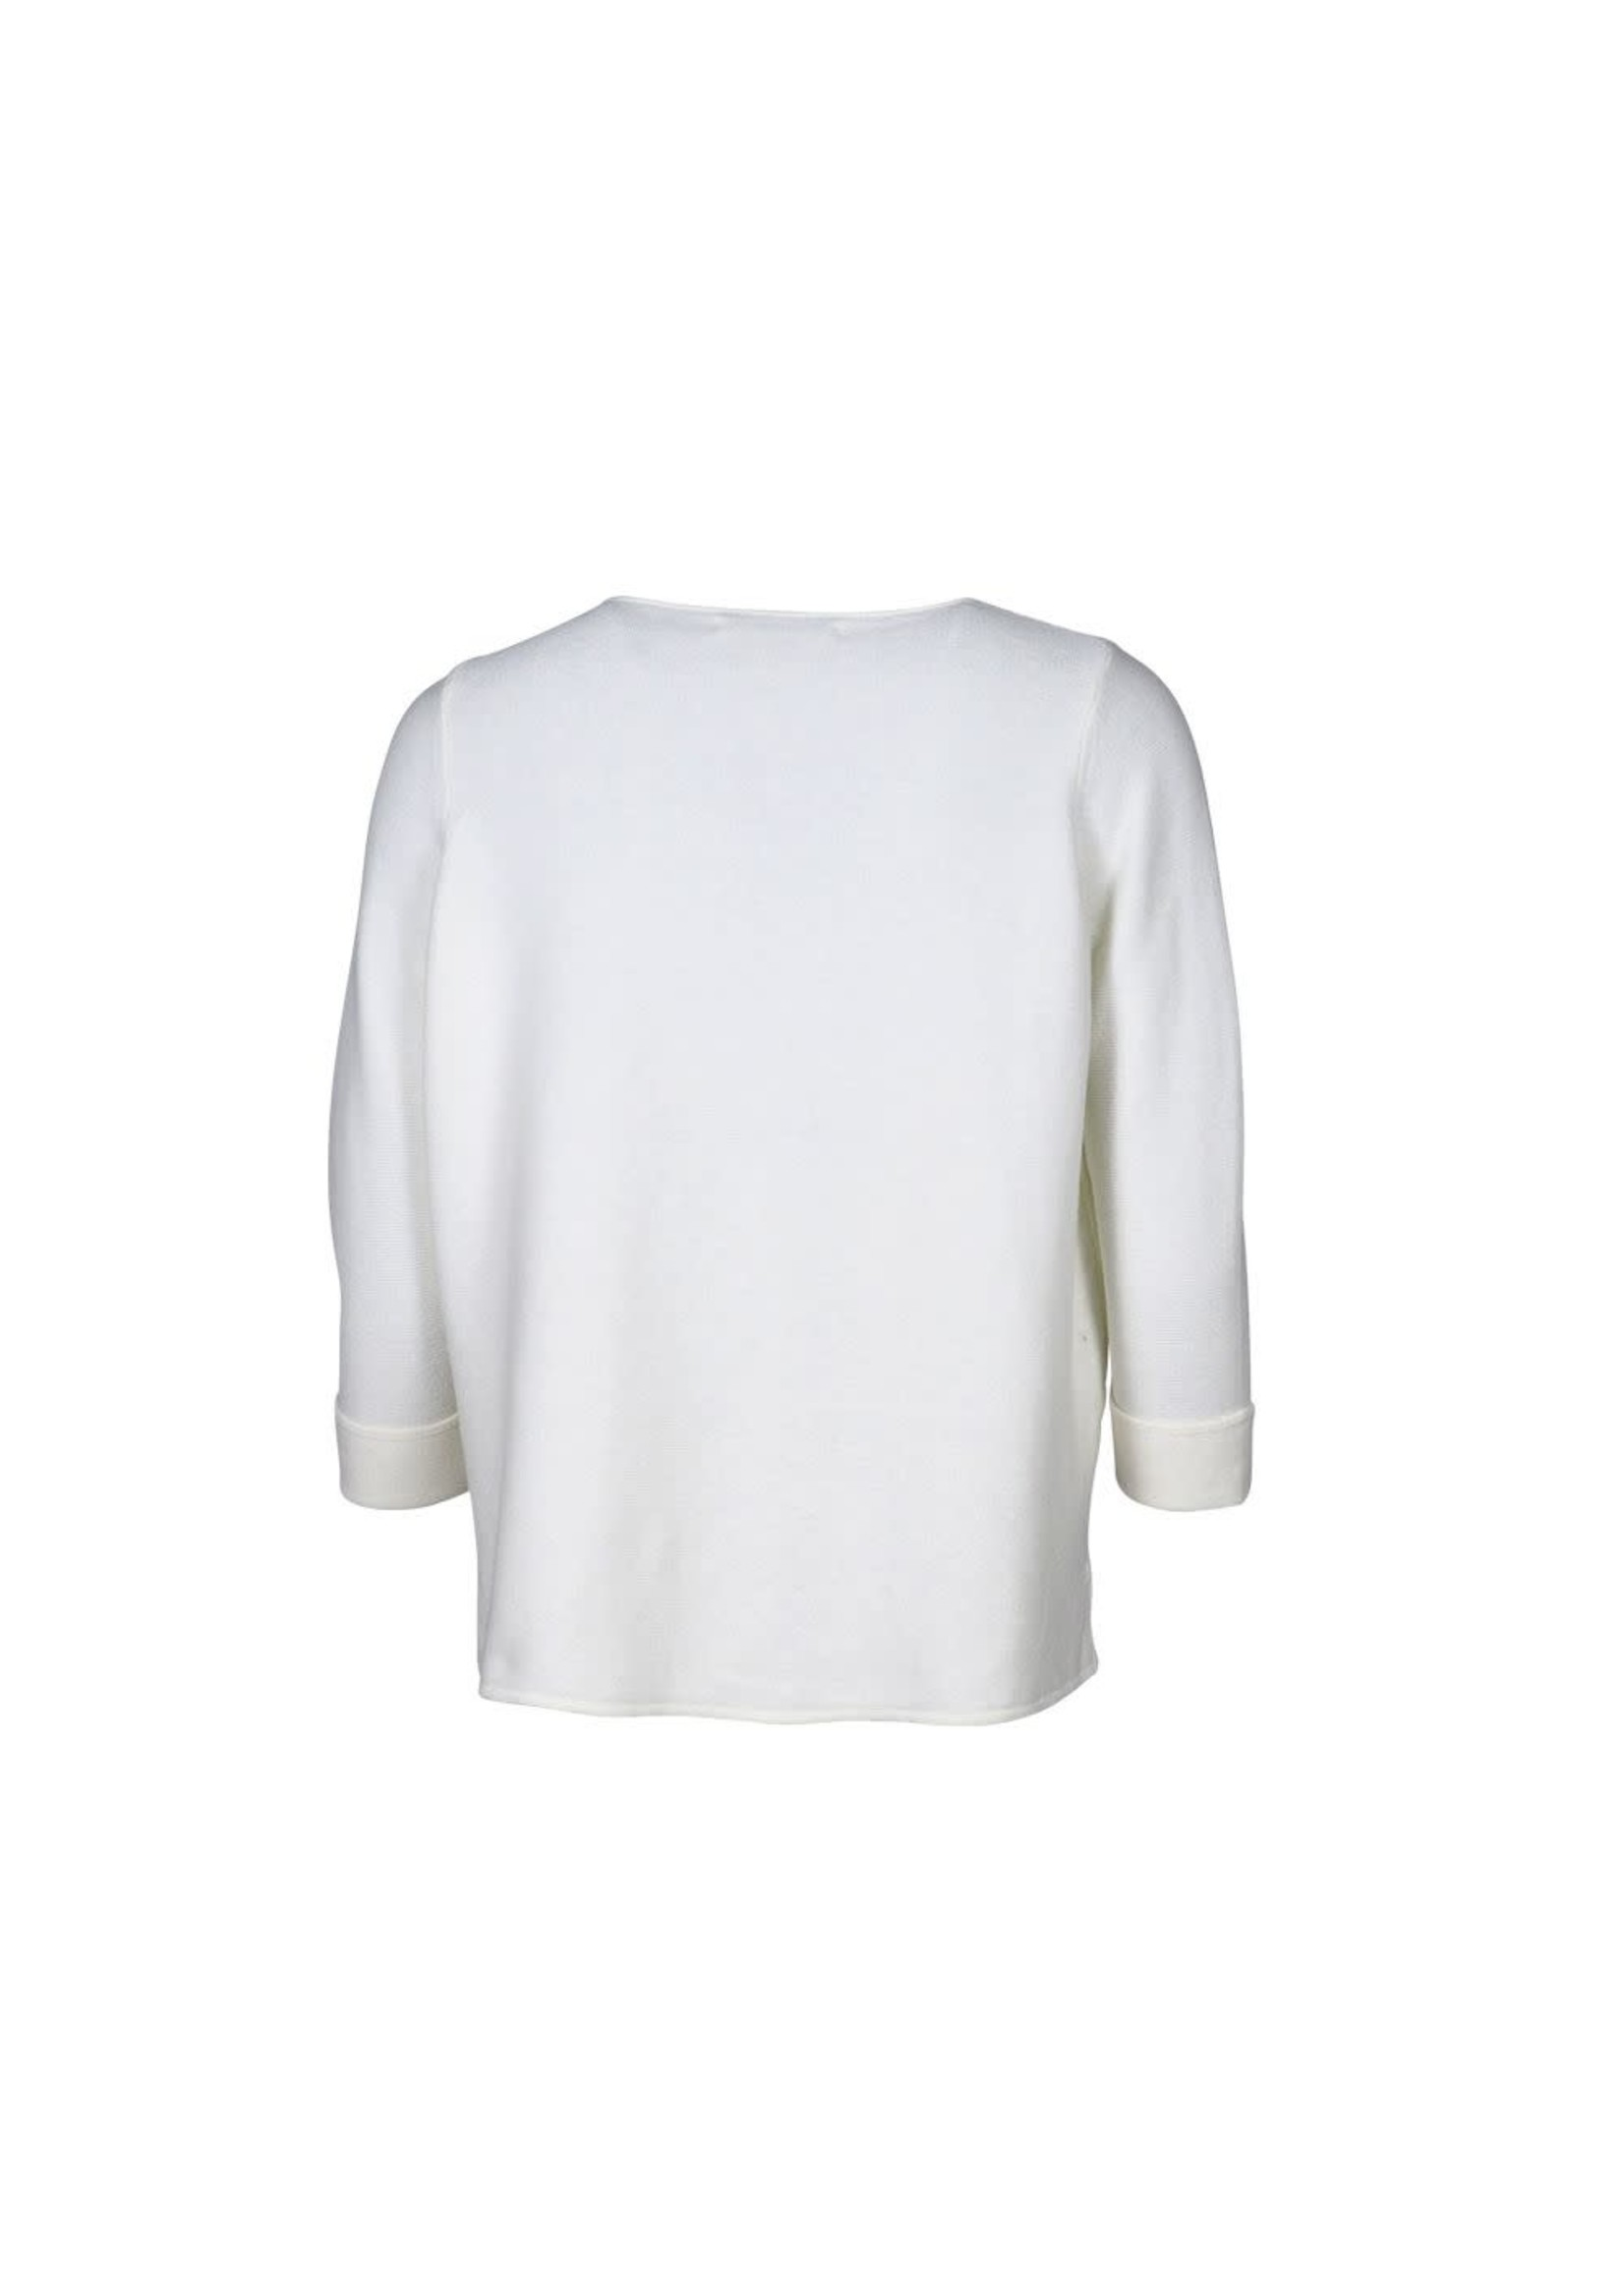 Mansted Moriko Sweater *More Colours*